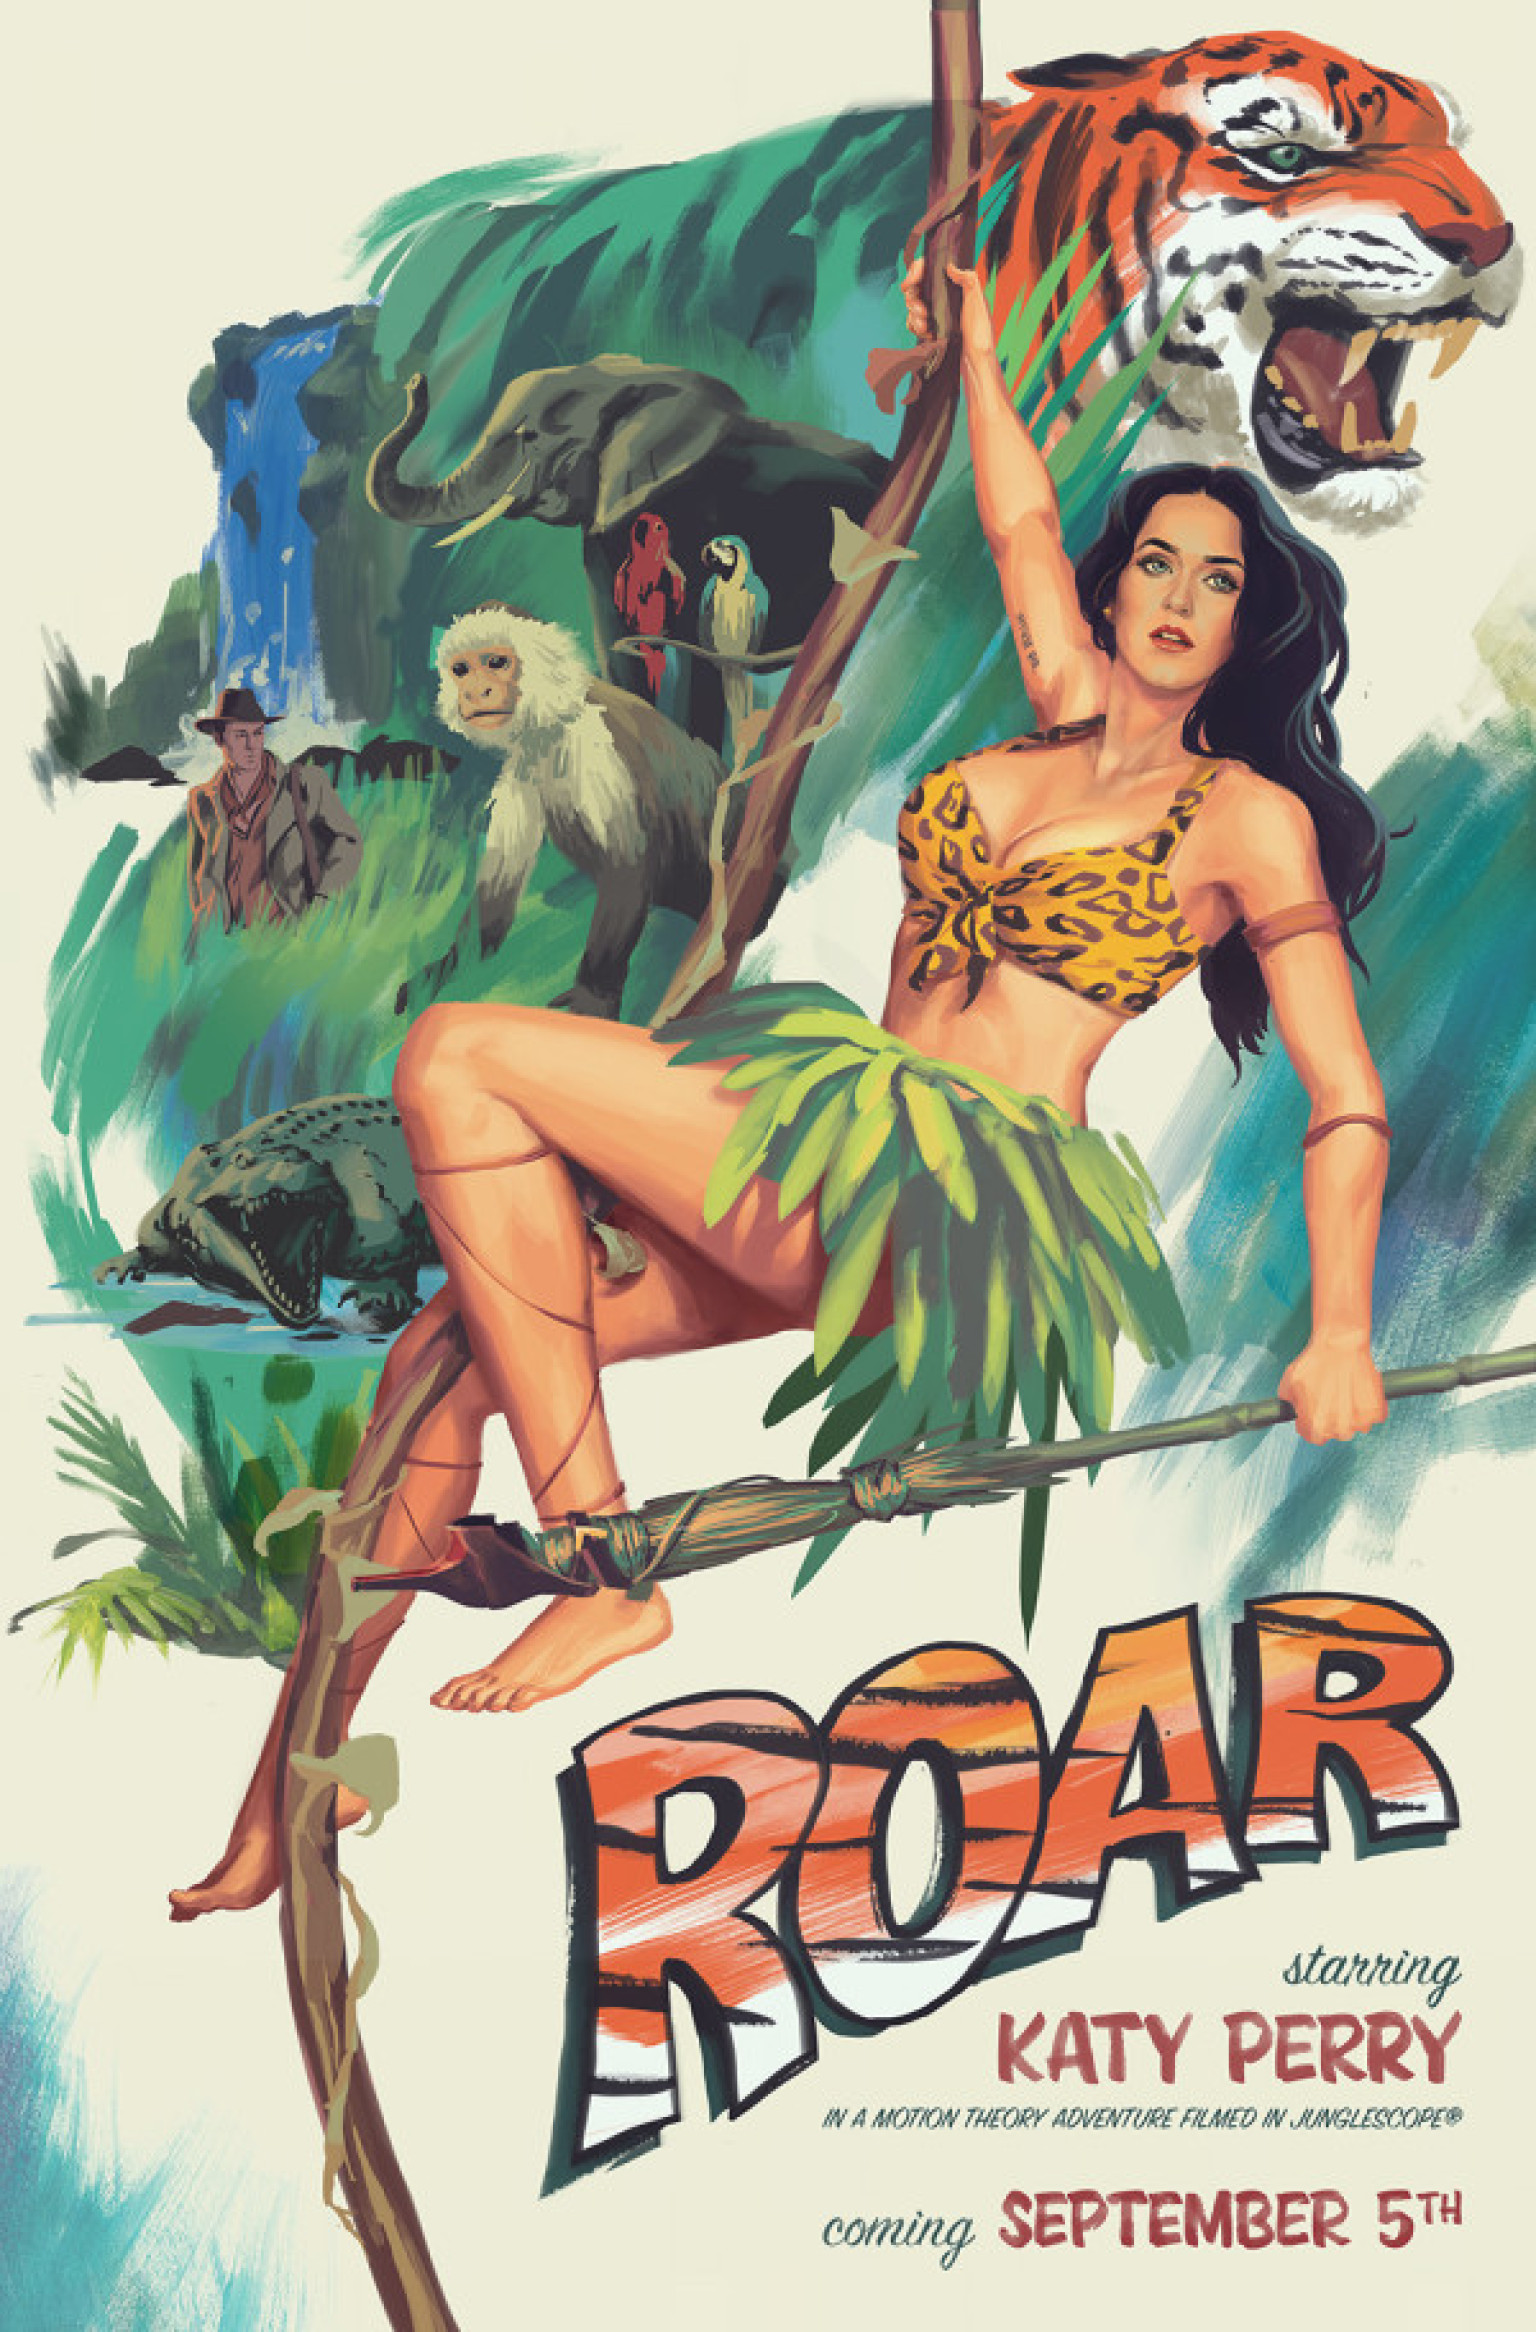 KATY-PERRY-ROAR-VIDEO-facebook jpgKaty Perry Roar Album Artwork